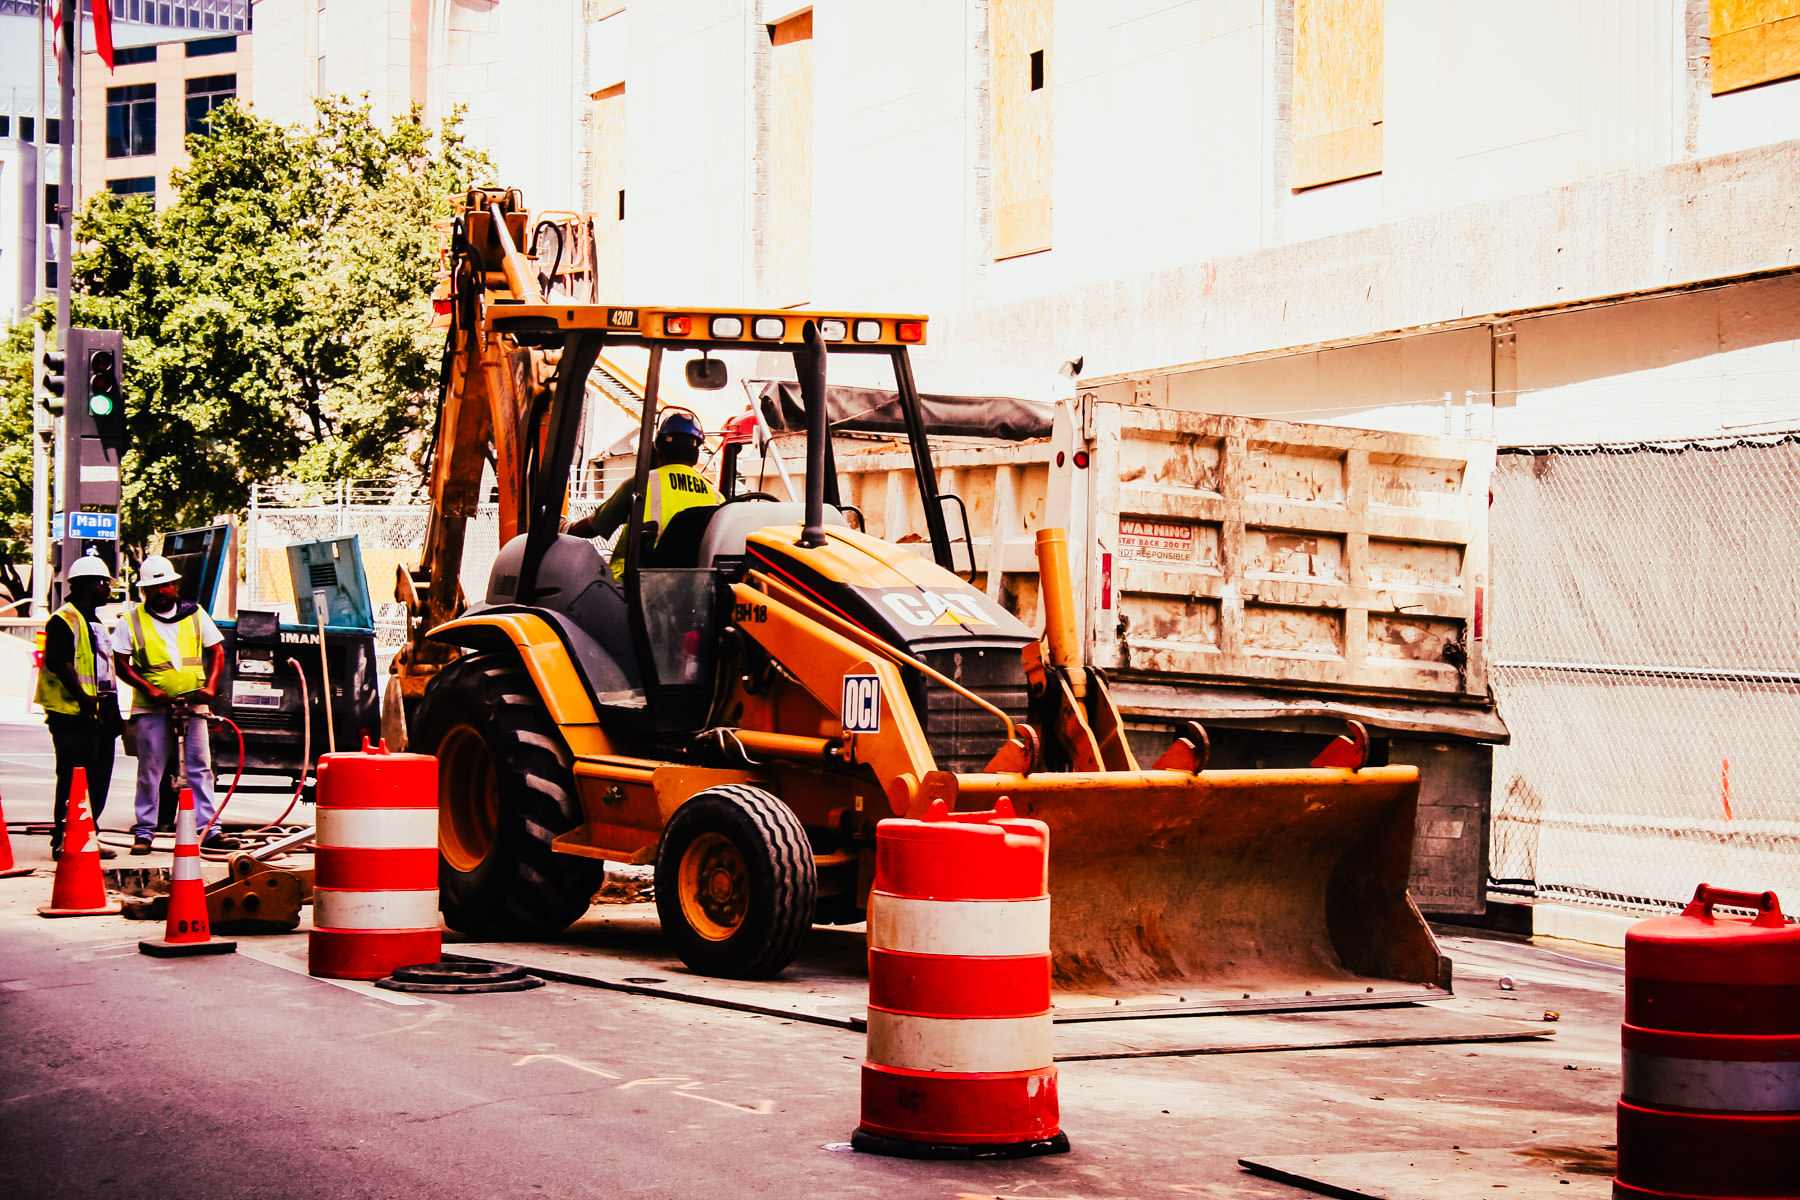 A backhoe performs Infrastructure repair on the streets of Downtown Dallas.